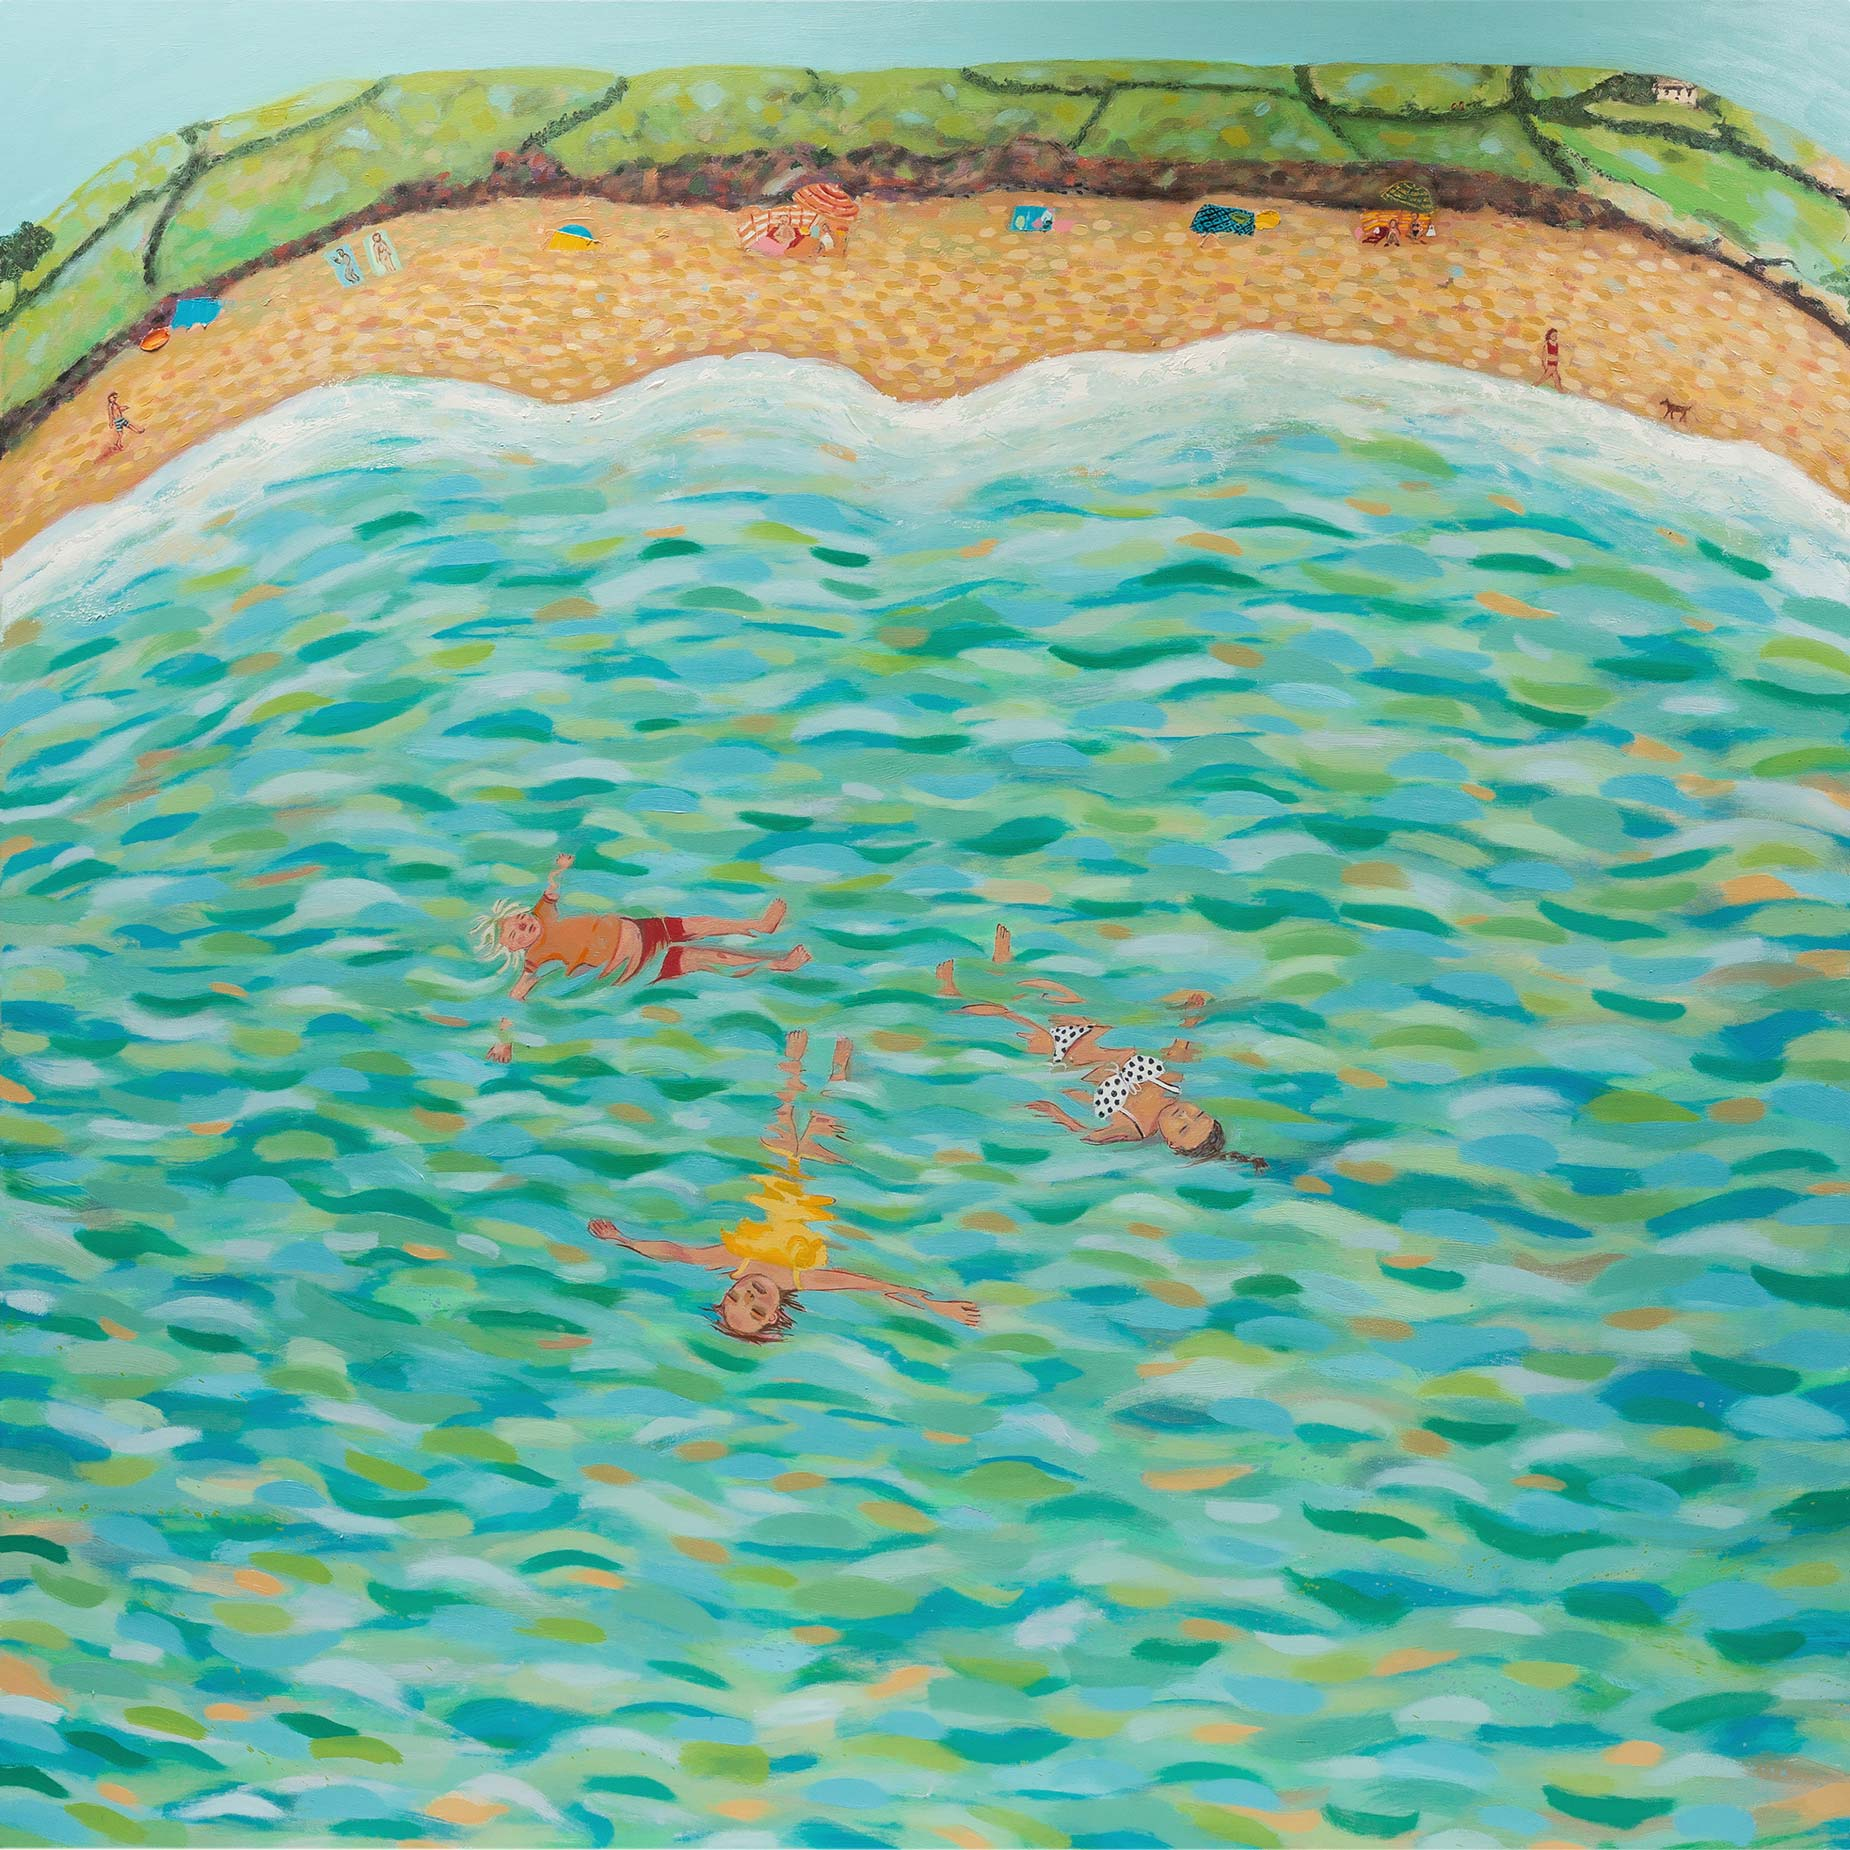 'Coastal Bathers' by Siobhan Purdy, shown at the Byre Gallery